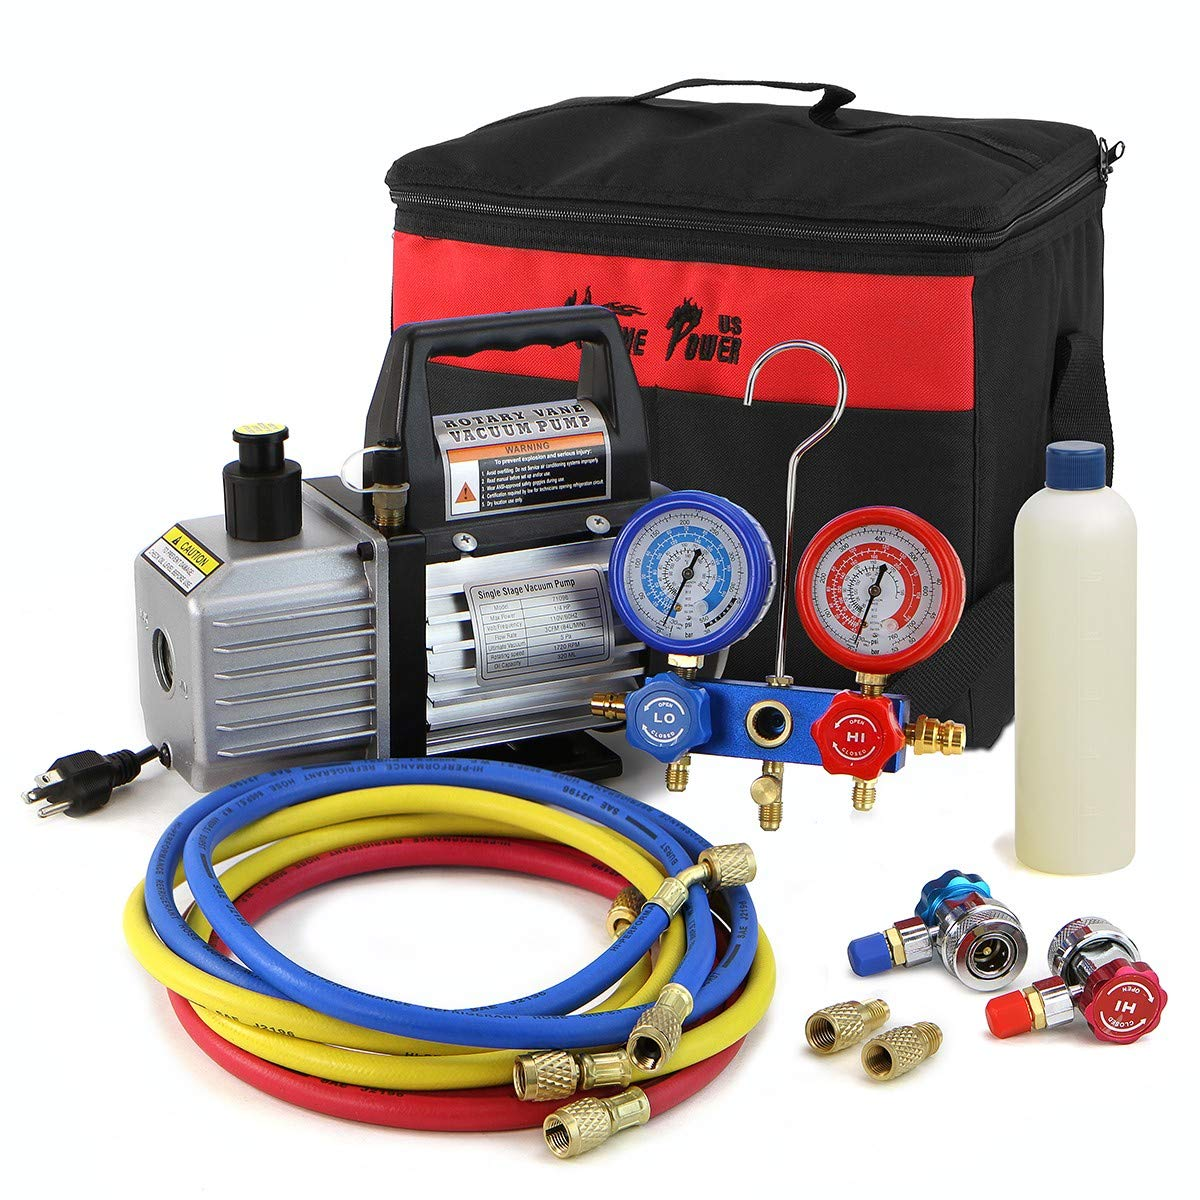 XtremepowerUS 3CFM 1/4HP Air Vacuum Pump HVAC R134a R12 R22 R410a A/C Refrigeration Kit AC Manifold Gauge Carrying Tote by XtremepowerUS (Image #1)